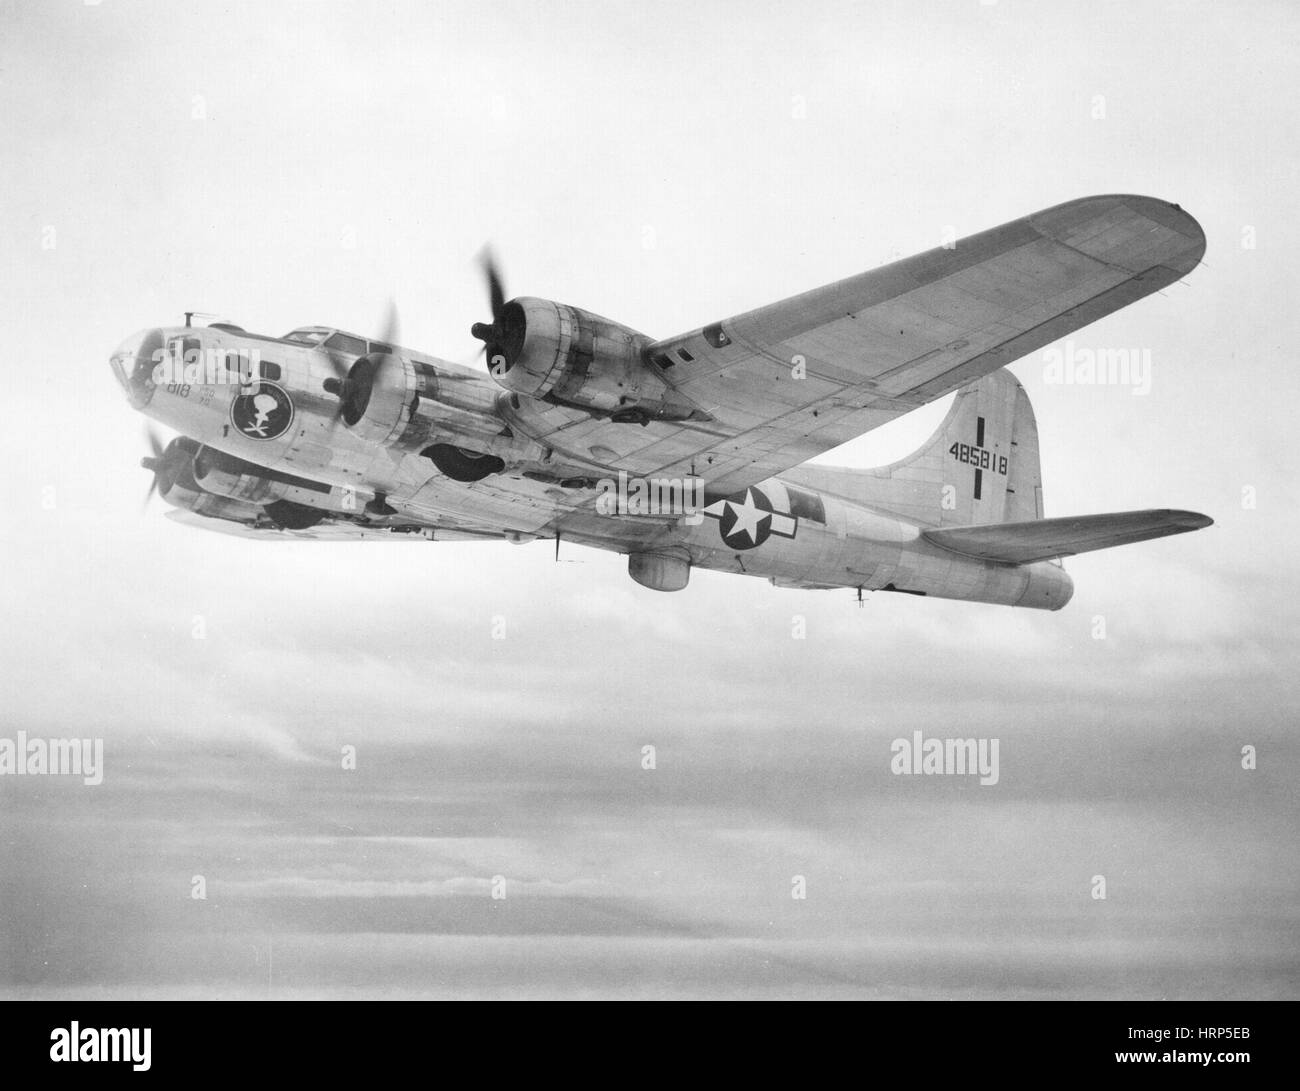 WWII, Boeing B-17 Flying Fortress, 1940s Stock Photo